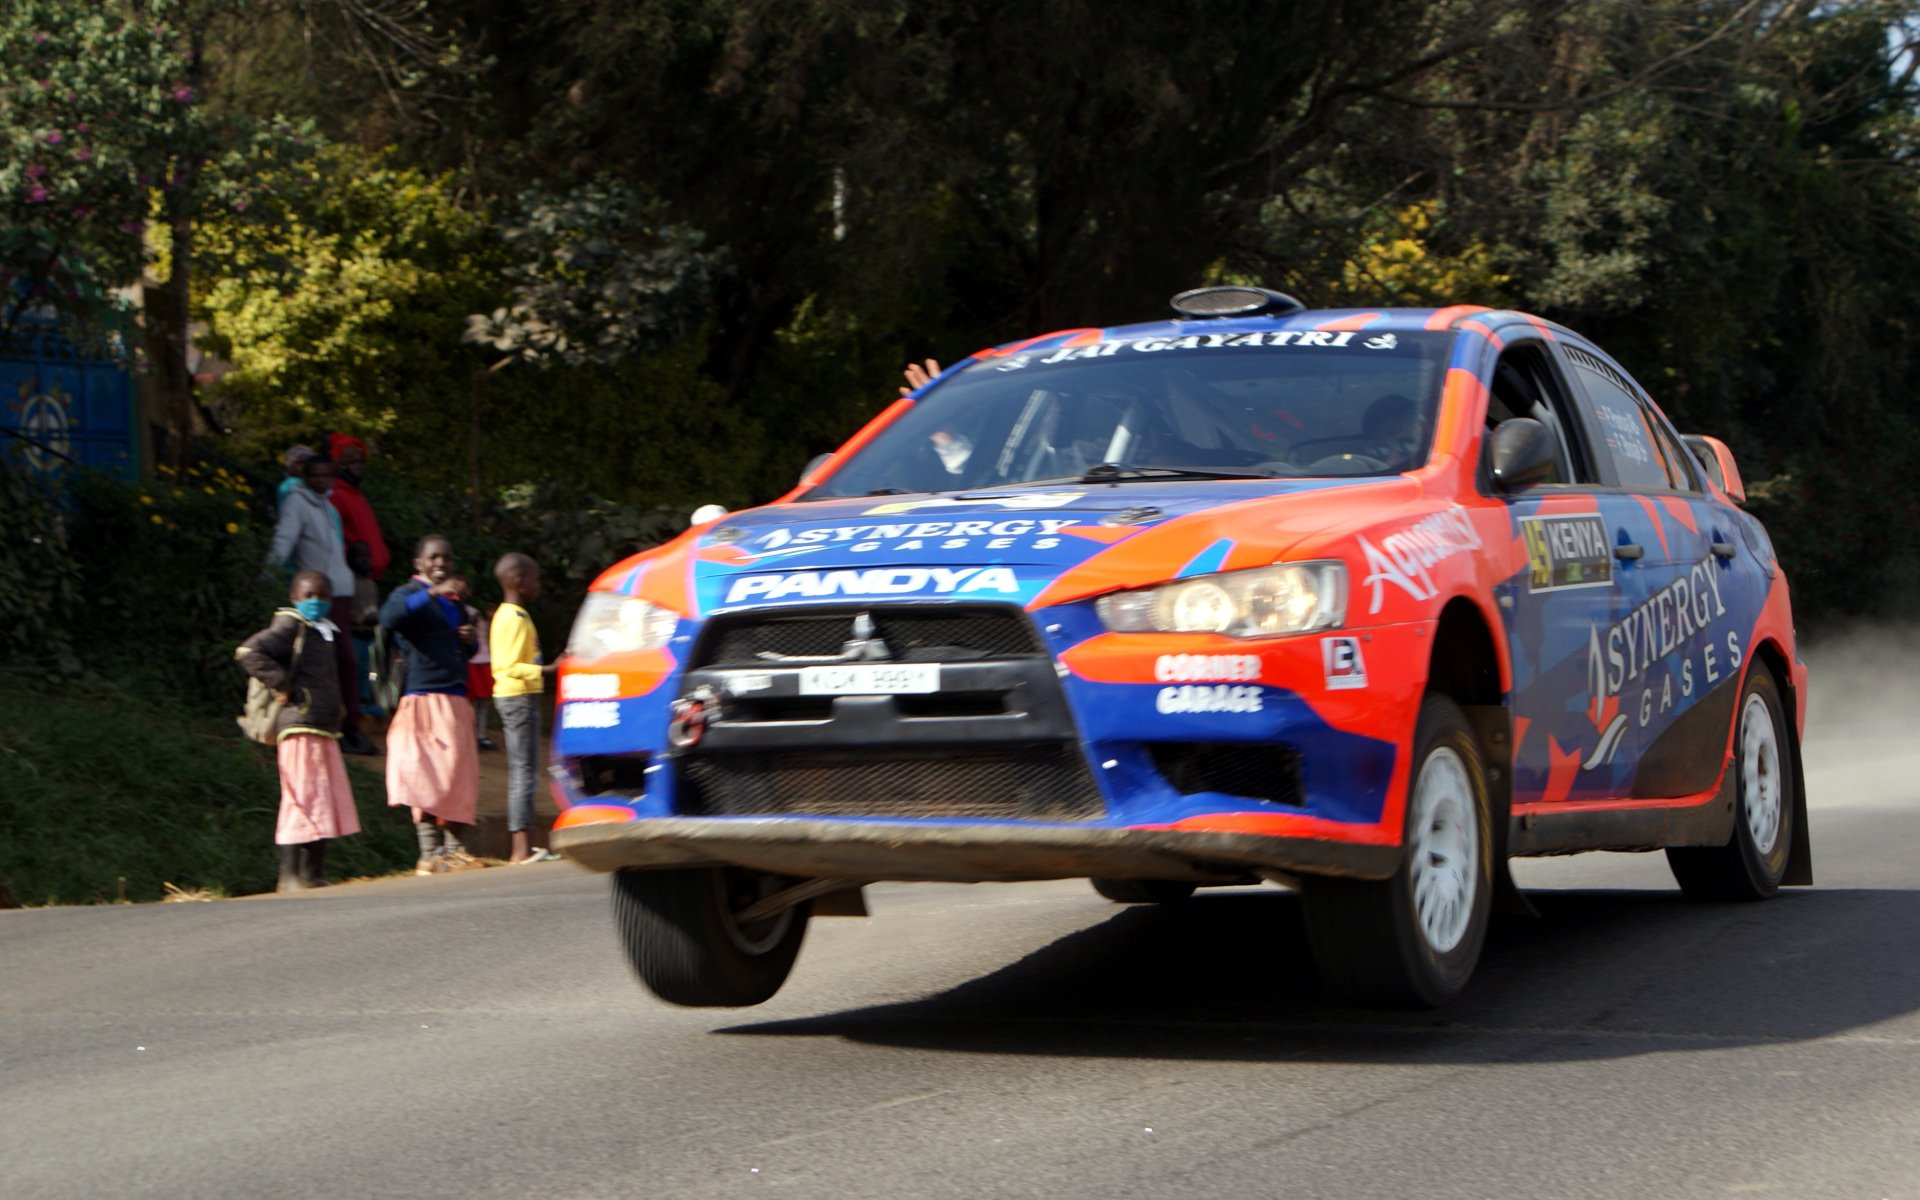 The WRC Rally is back in Kenya after nearly two decades. Maximise your experience with this ultimate guide to the spectator locations.